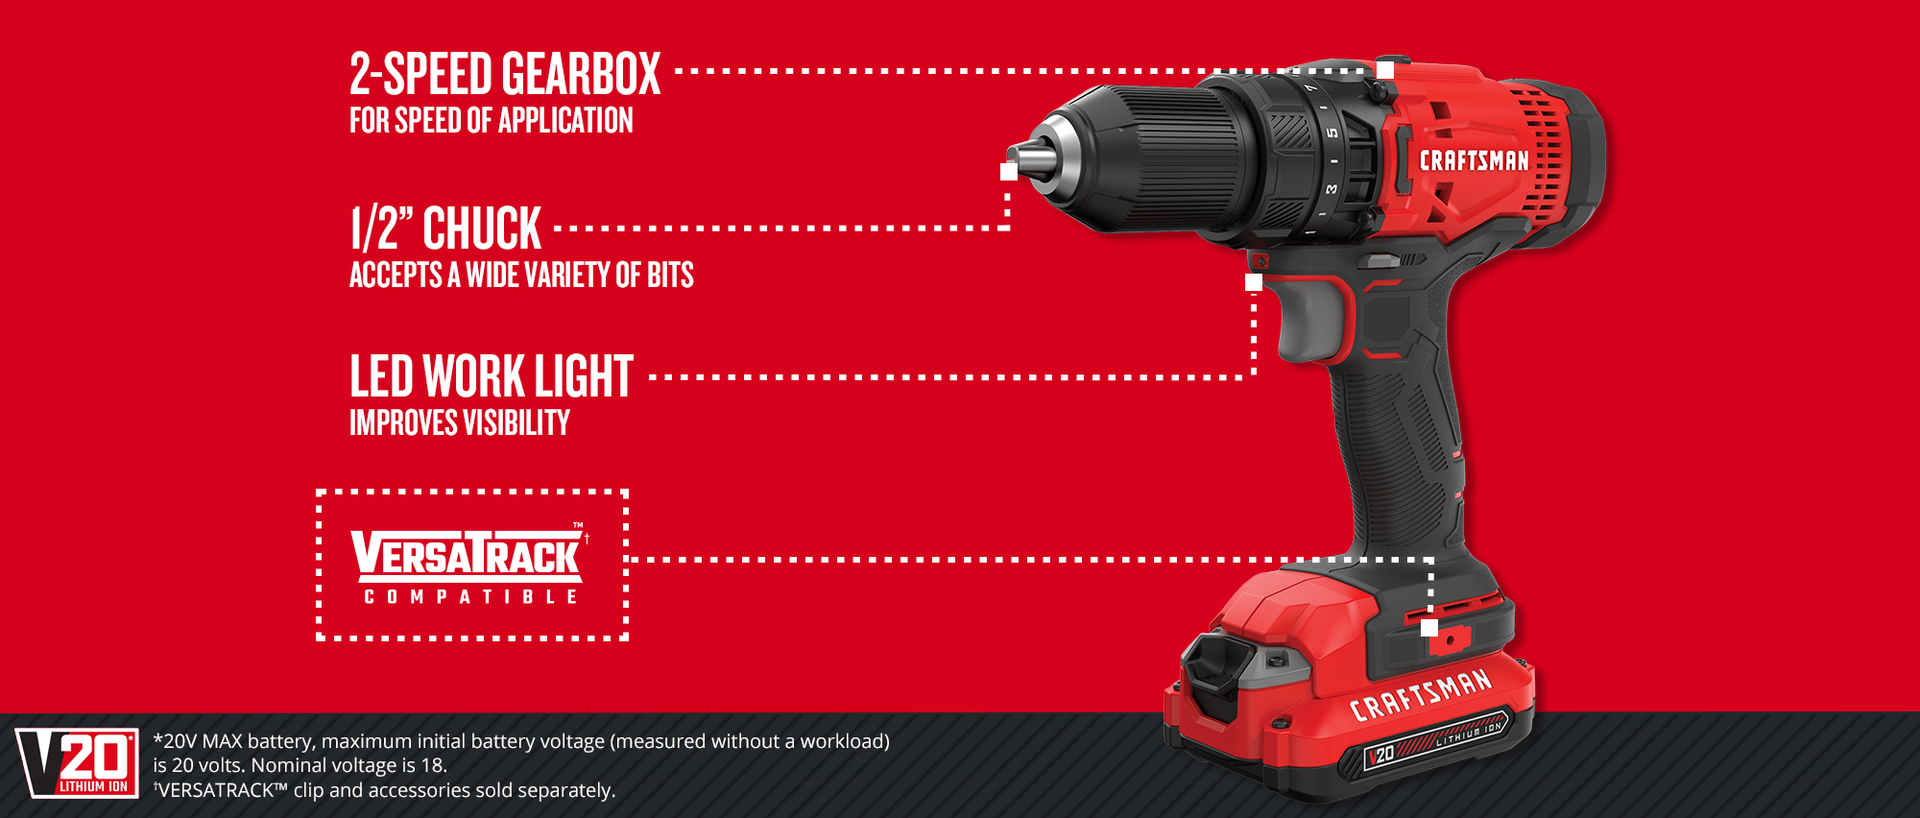 CRAFTSMAN V20 20-Volt Max 1/2-in Cordless Drill (Charger Included